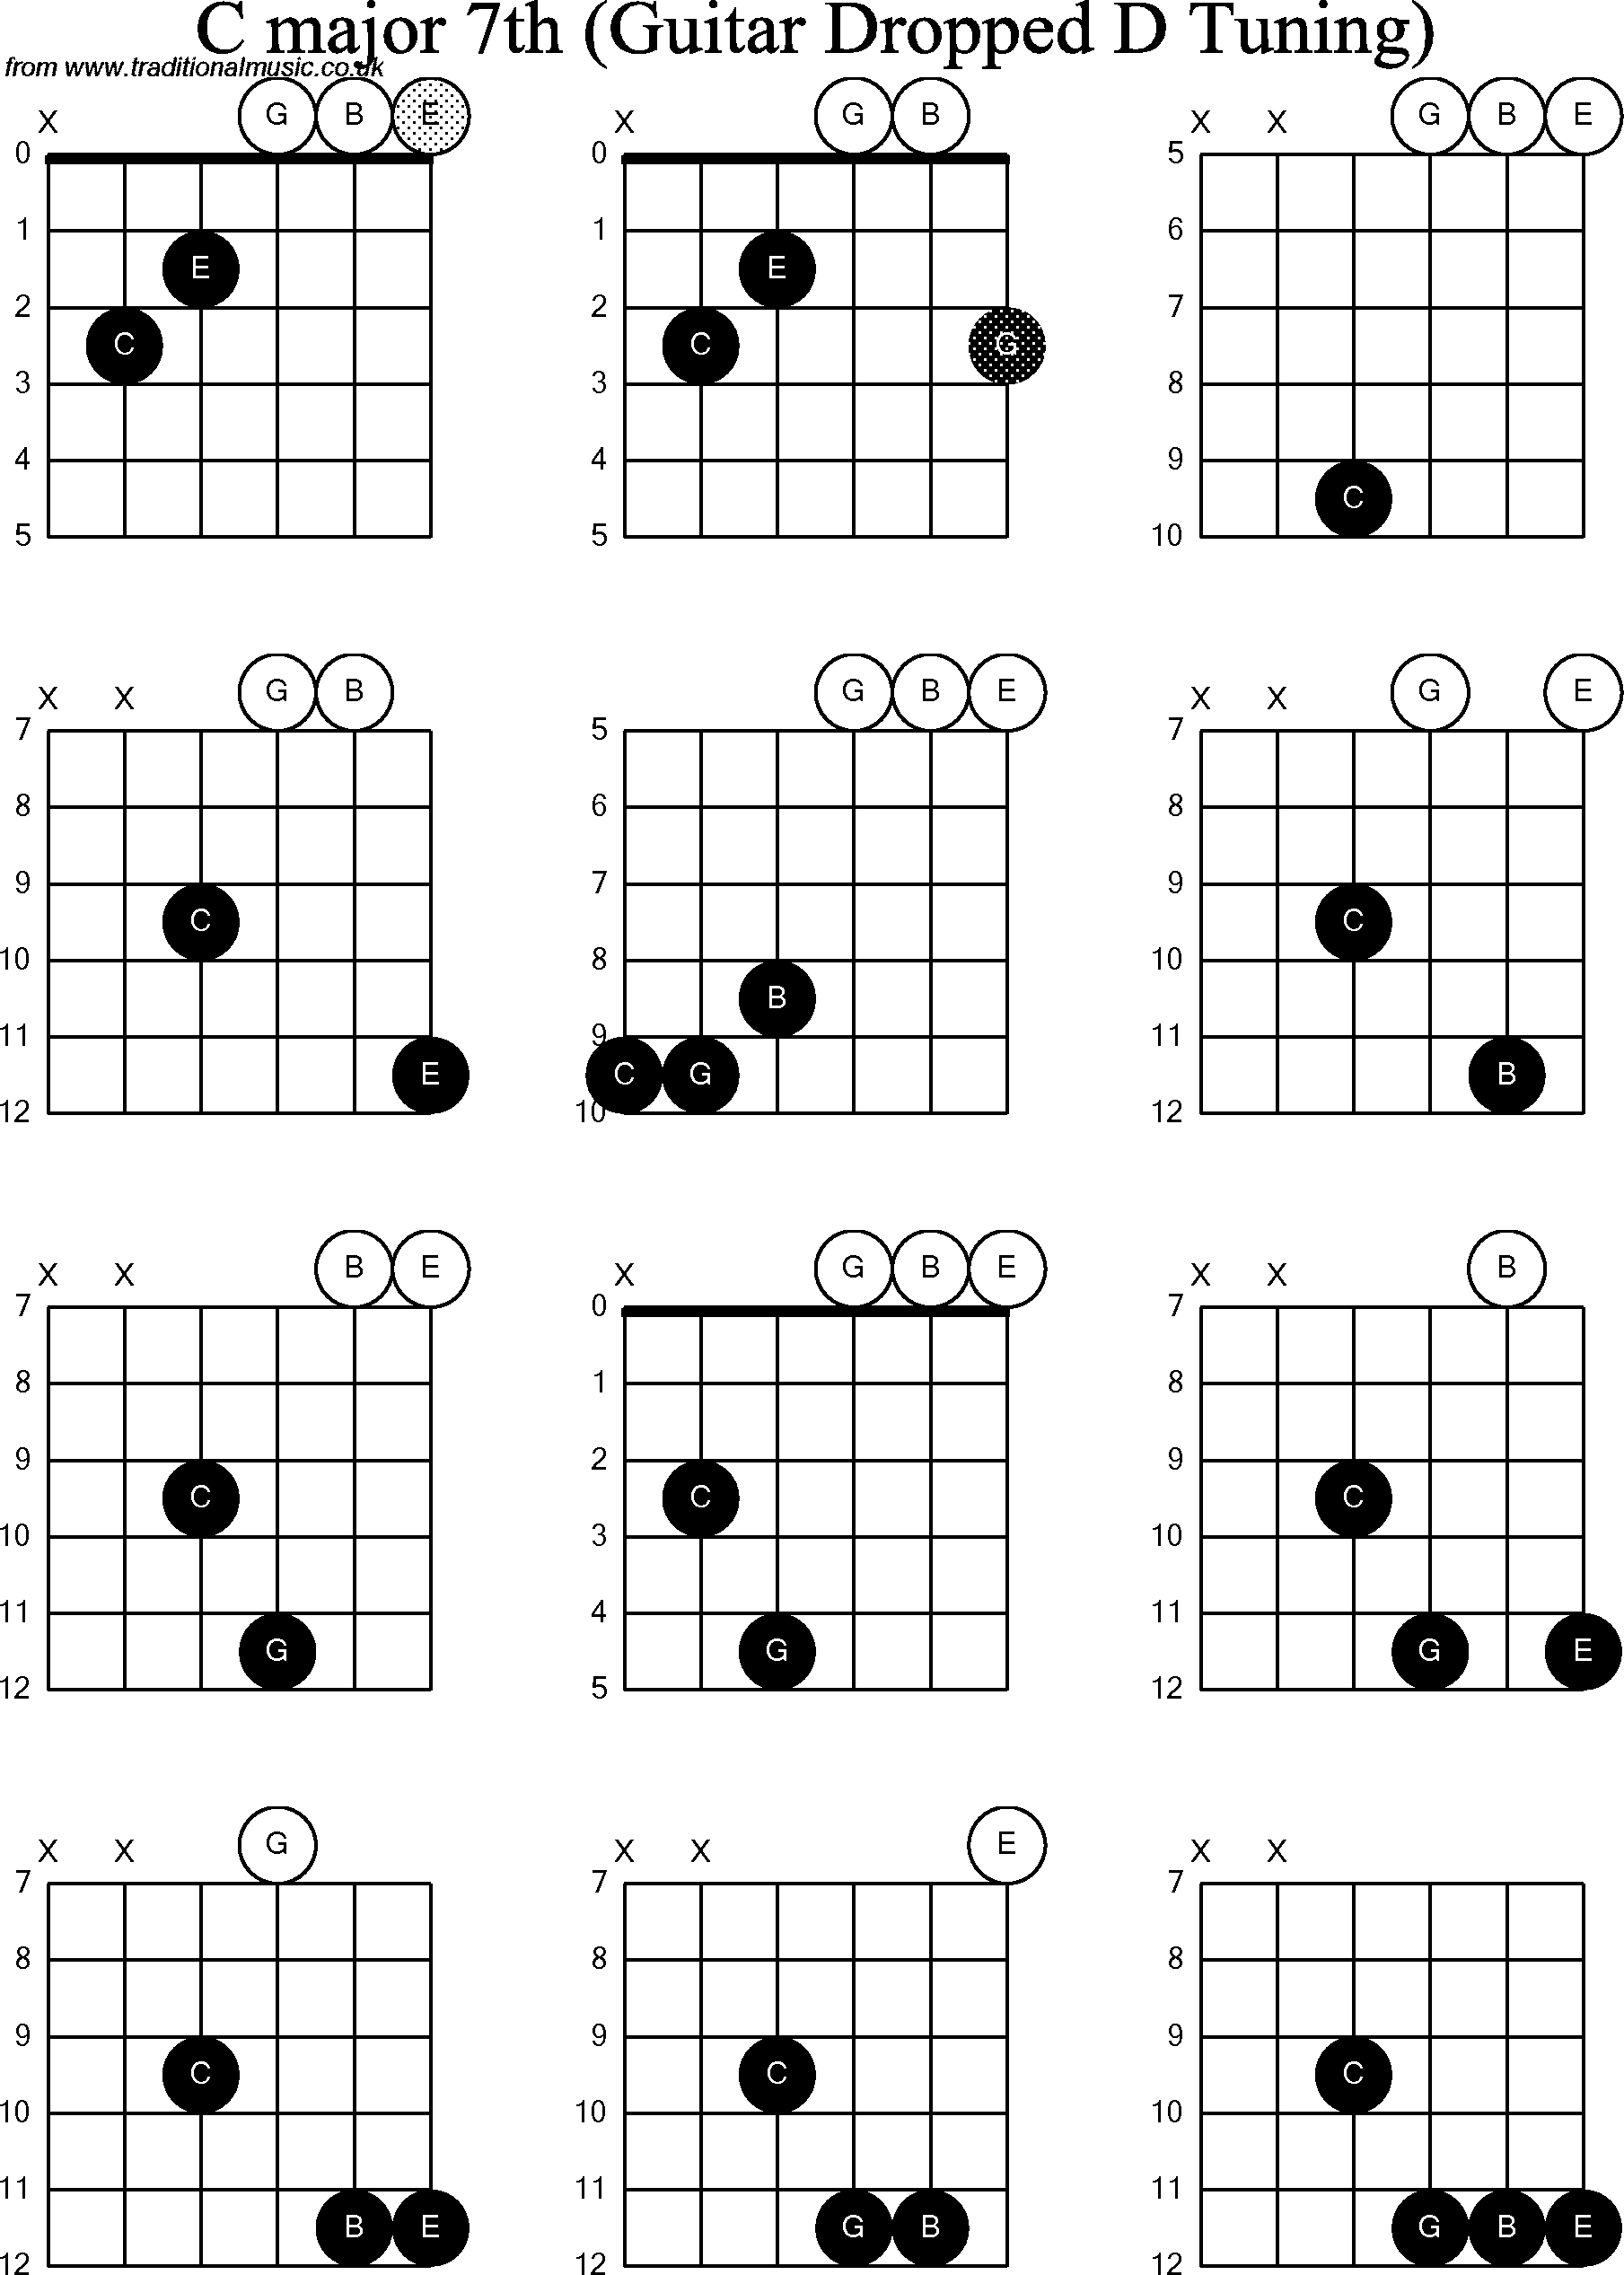 Stay sugarland guitar chords